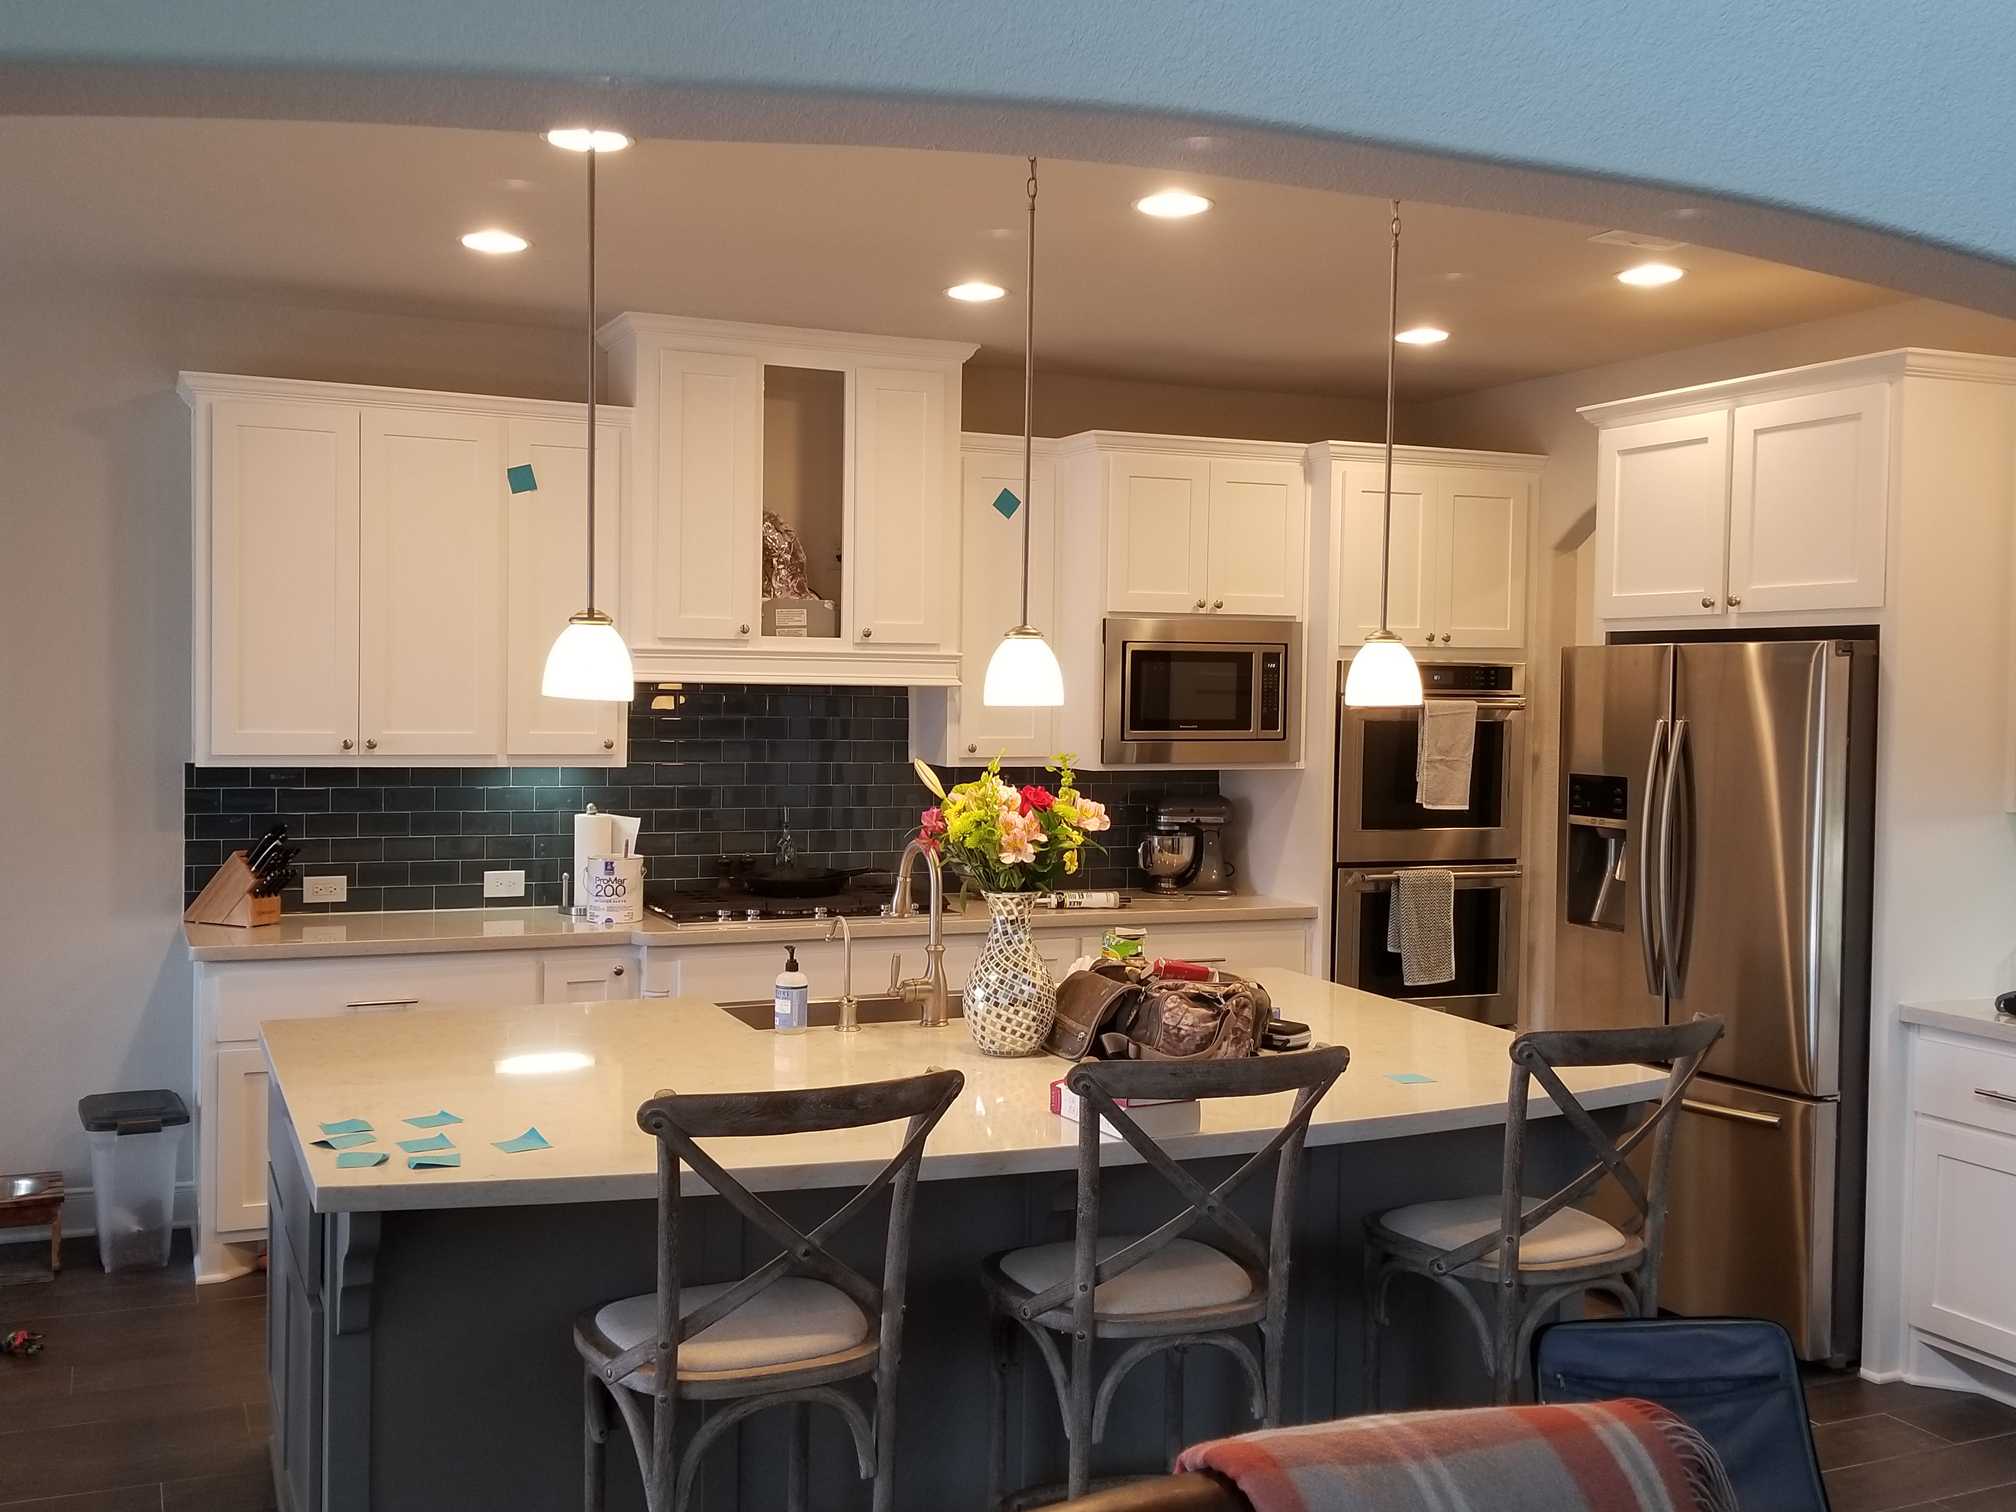 Buy custom kitchen cabinets factory direct in Barnegat NJ, Buy custom bathroom cabinets in Barnegat NJ, Buy custom shaker cabinets in Barnegat NJ, Buy custom craftsman cabinets in Barnegat NJ